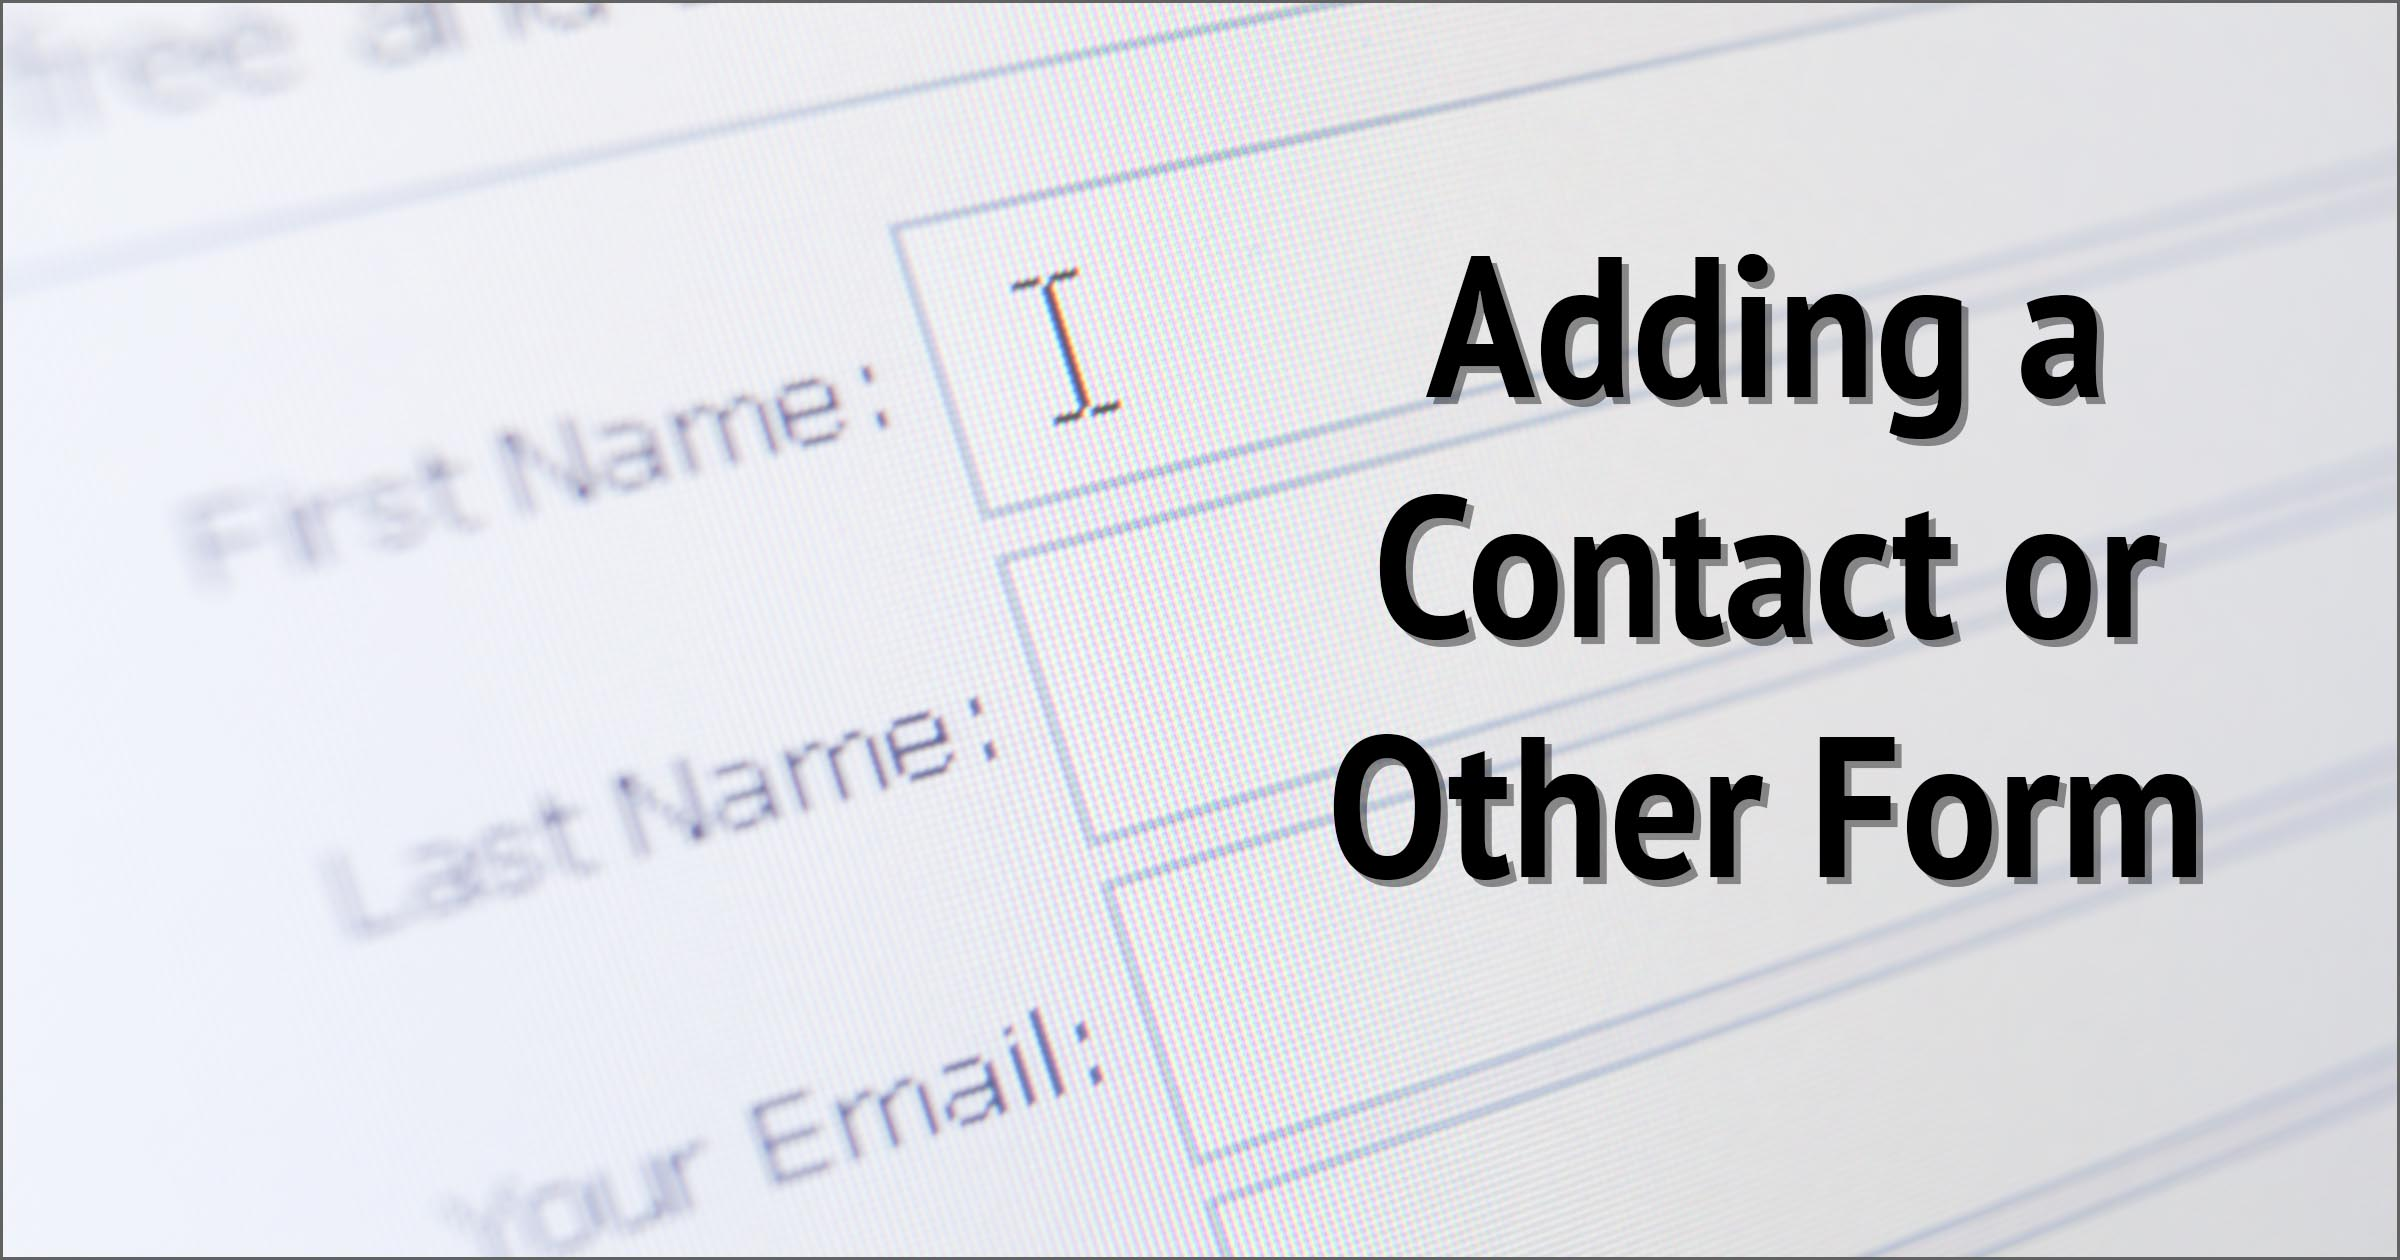 Adding a Contact or Other Form